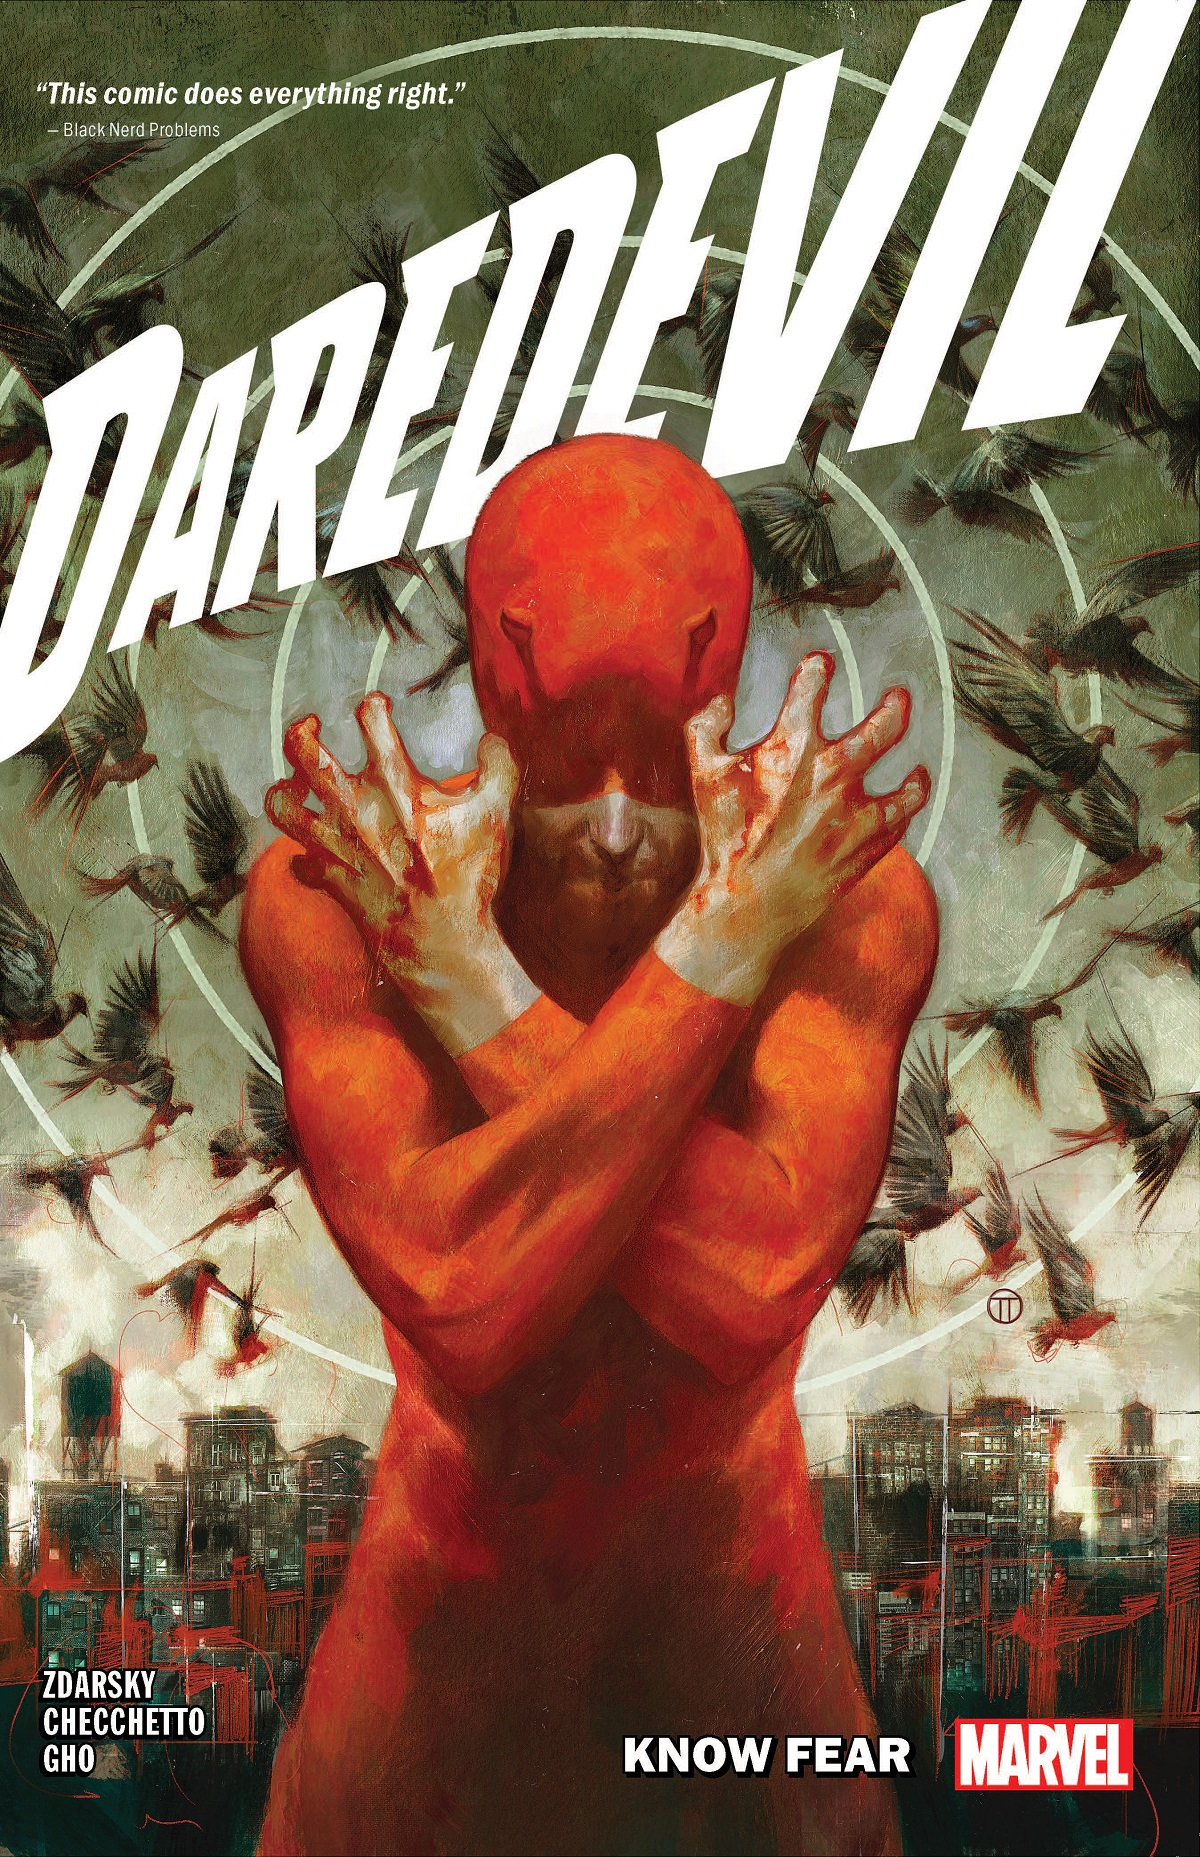 Daredevil By Chip Zdarsky Vol. 1: Know Fear (Trade Paperback)